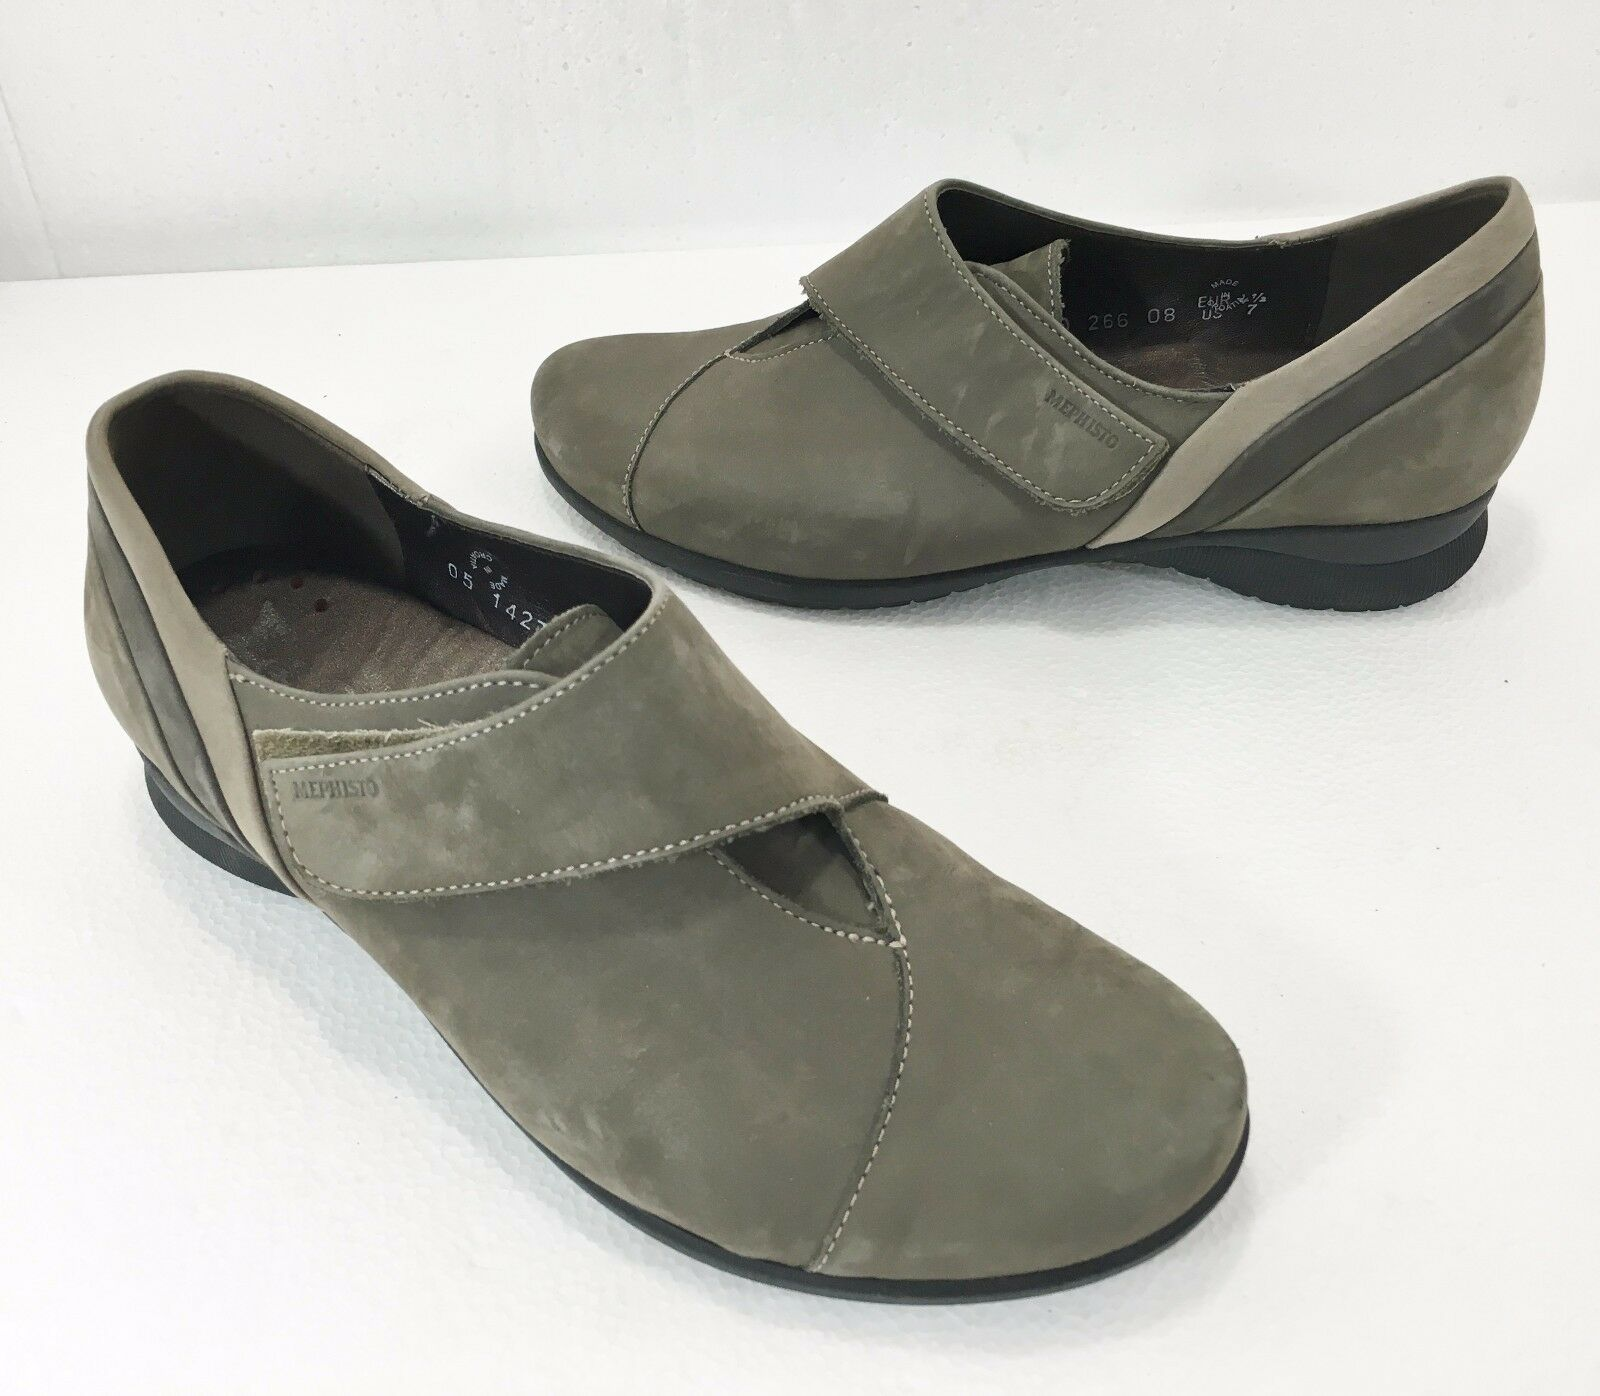 Mephisto Damenschuhe 7 Air-Jet Luce Gray Suede Walking Schuhes Velcro Closure